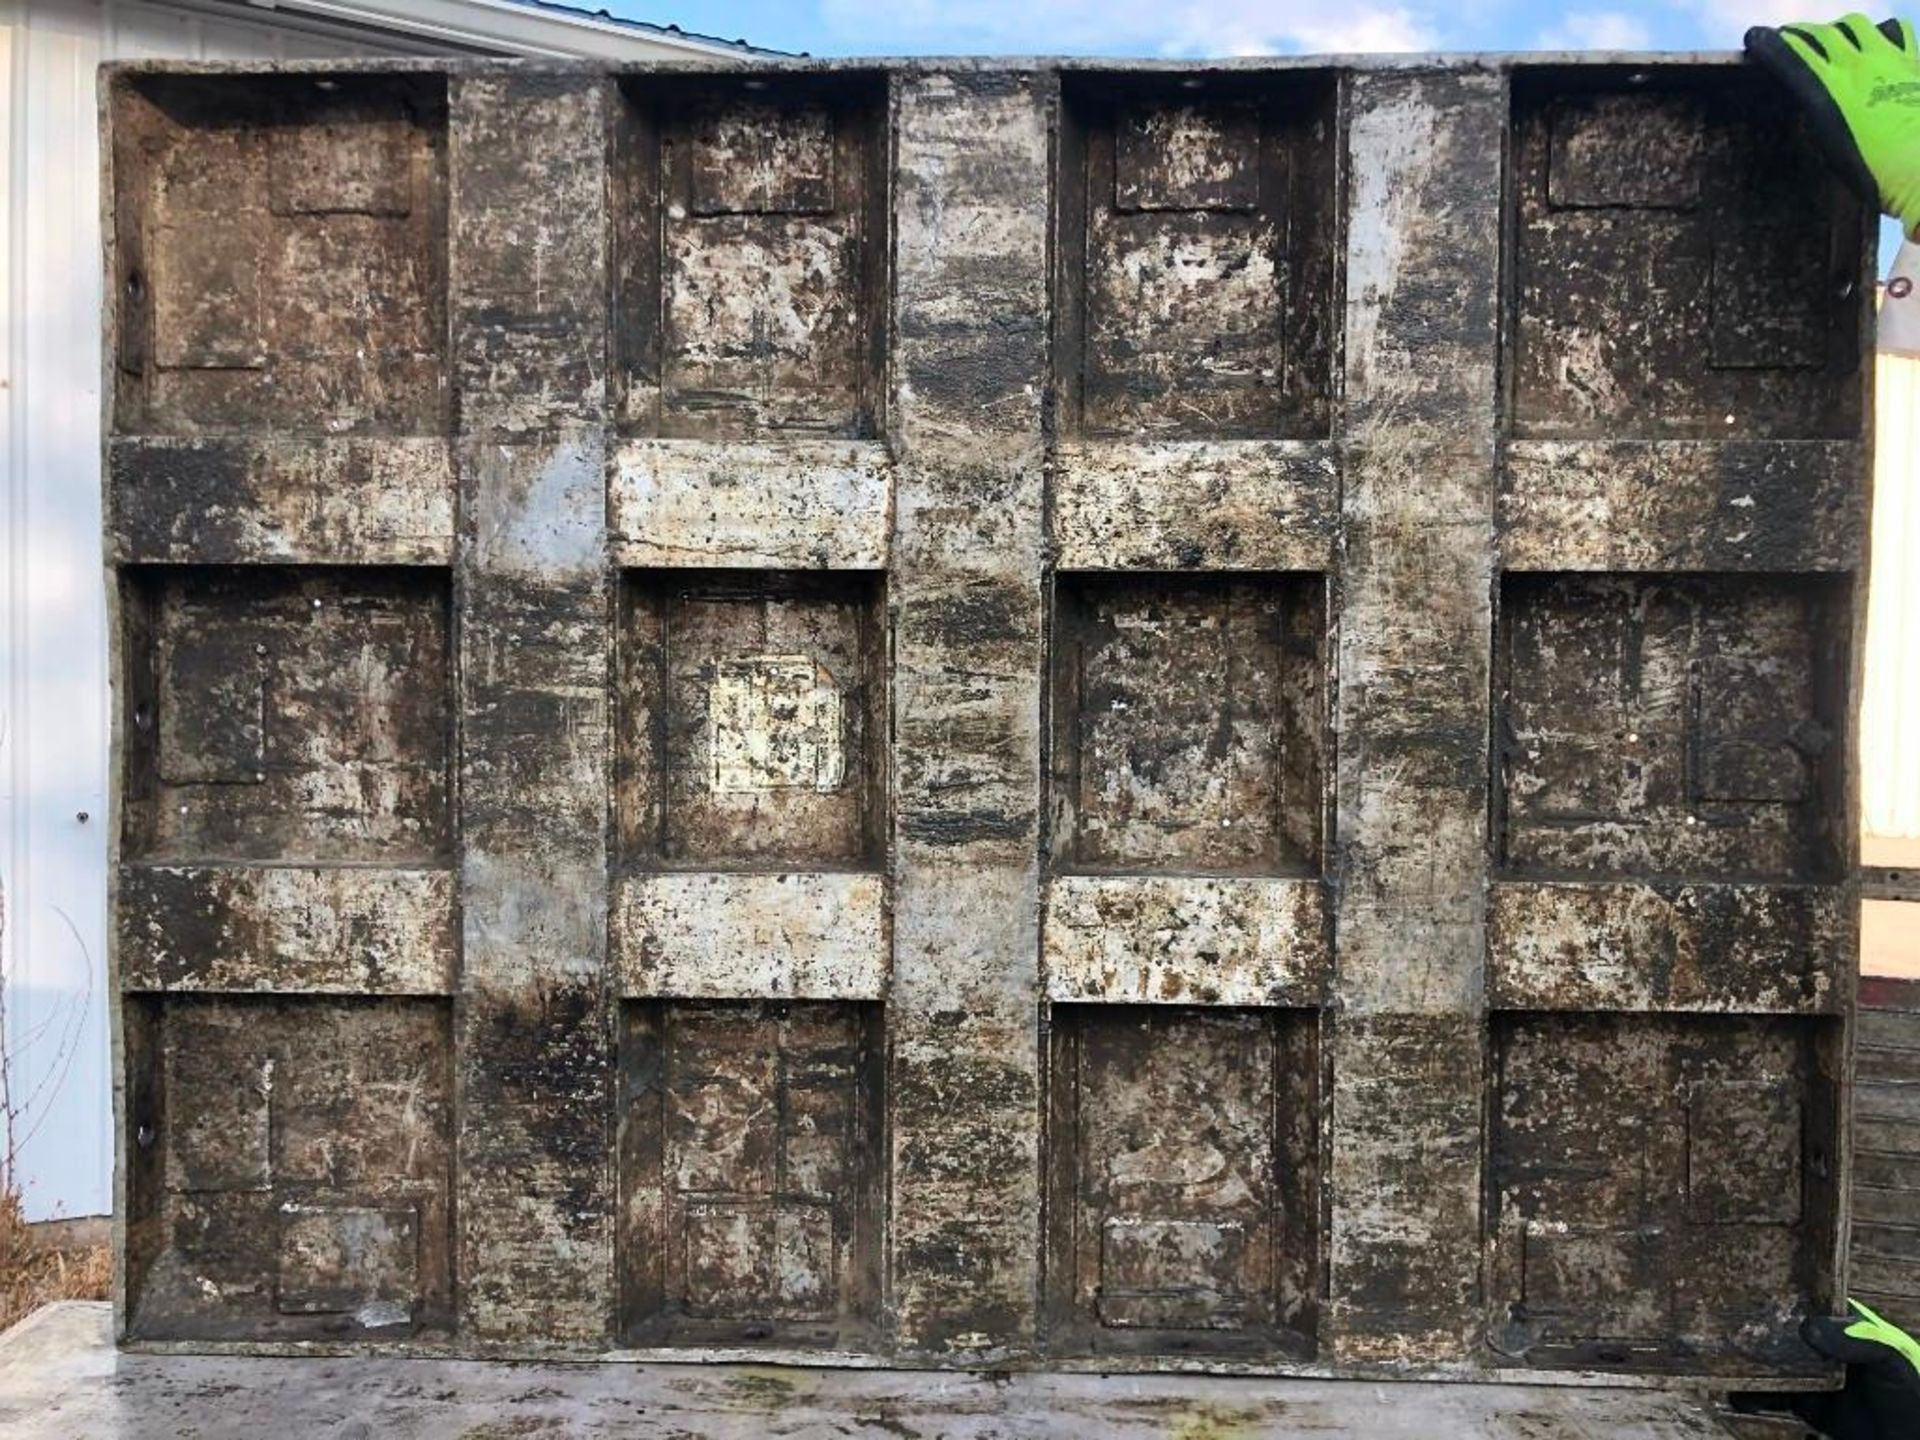 Lot 380 - (20) 3' x 4' Wall-Ties Aluminum Concrete Forms, Laydowns, Smooth 6-12 Hole Pattern. Located at 301 E